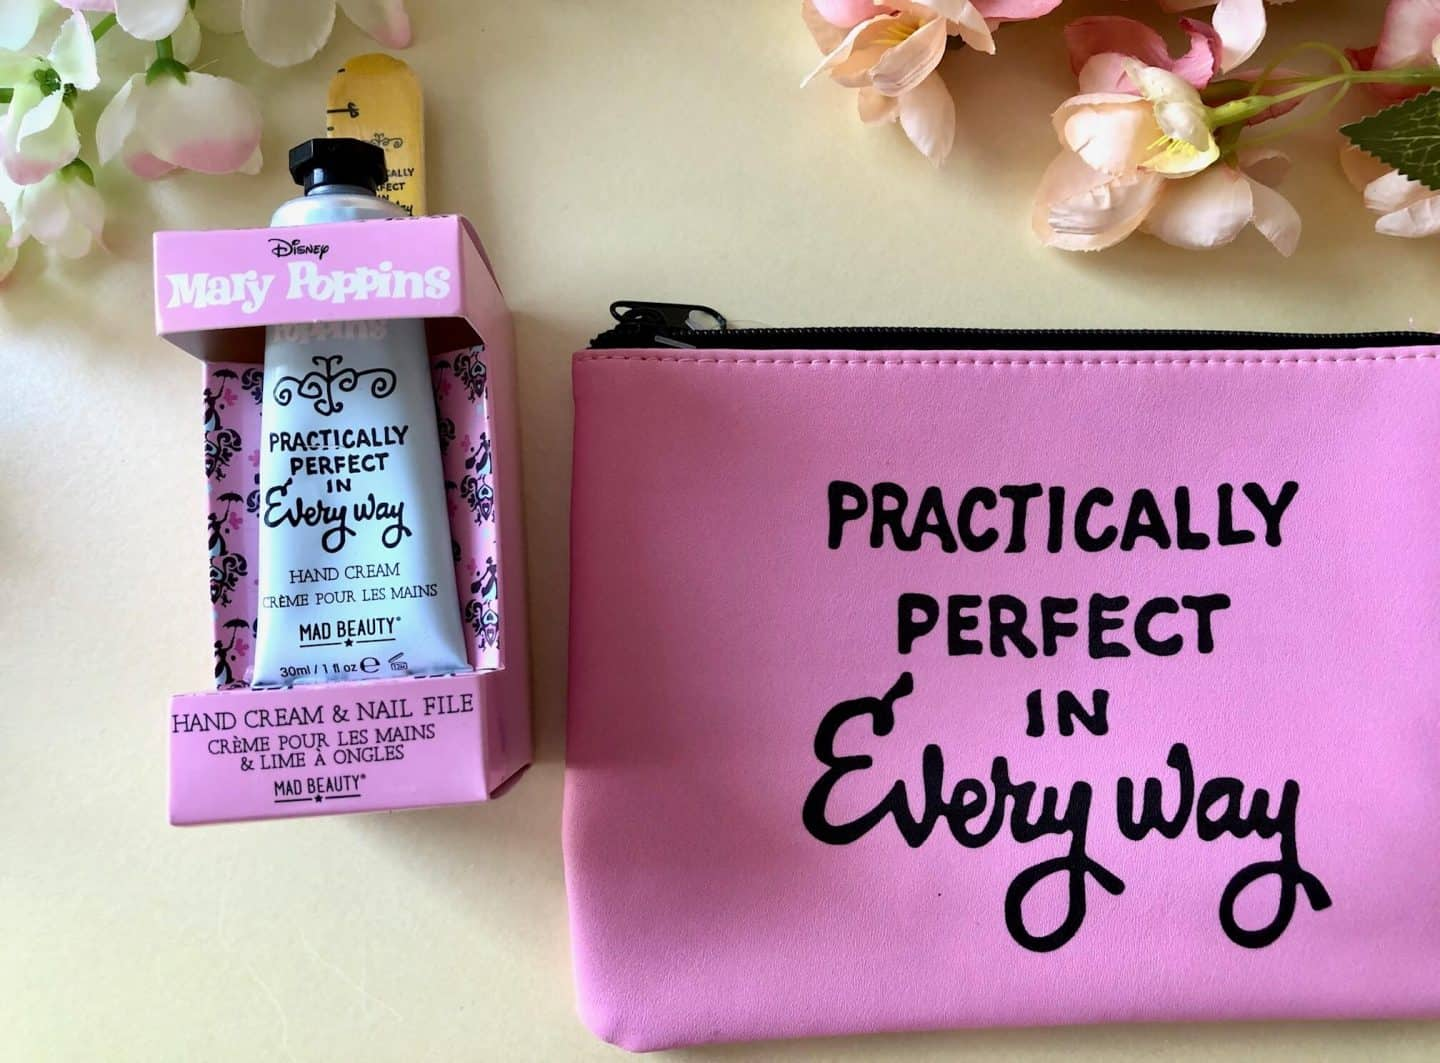 Disney-Mary-Poppins-gifts Gift Ideas For Mother's Day